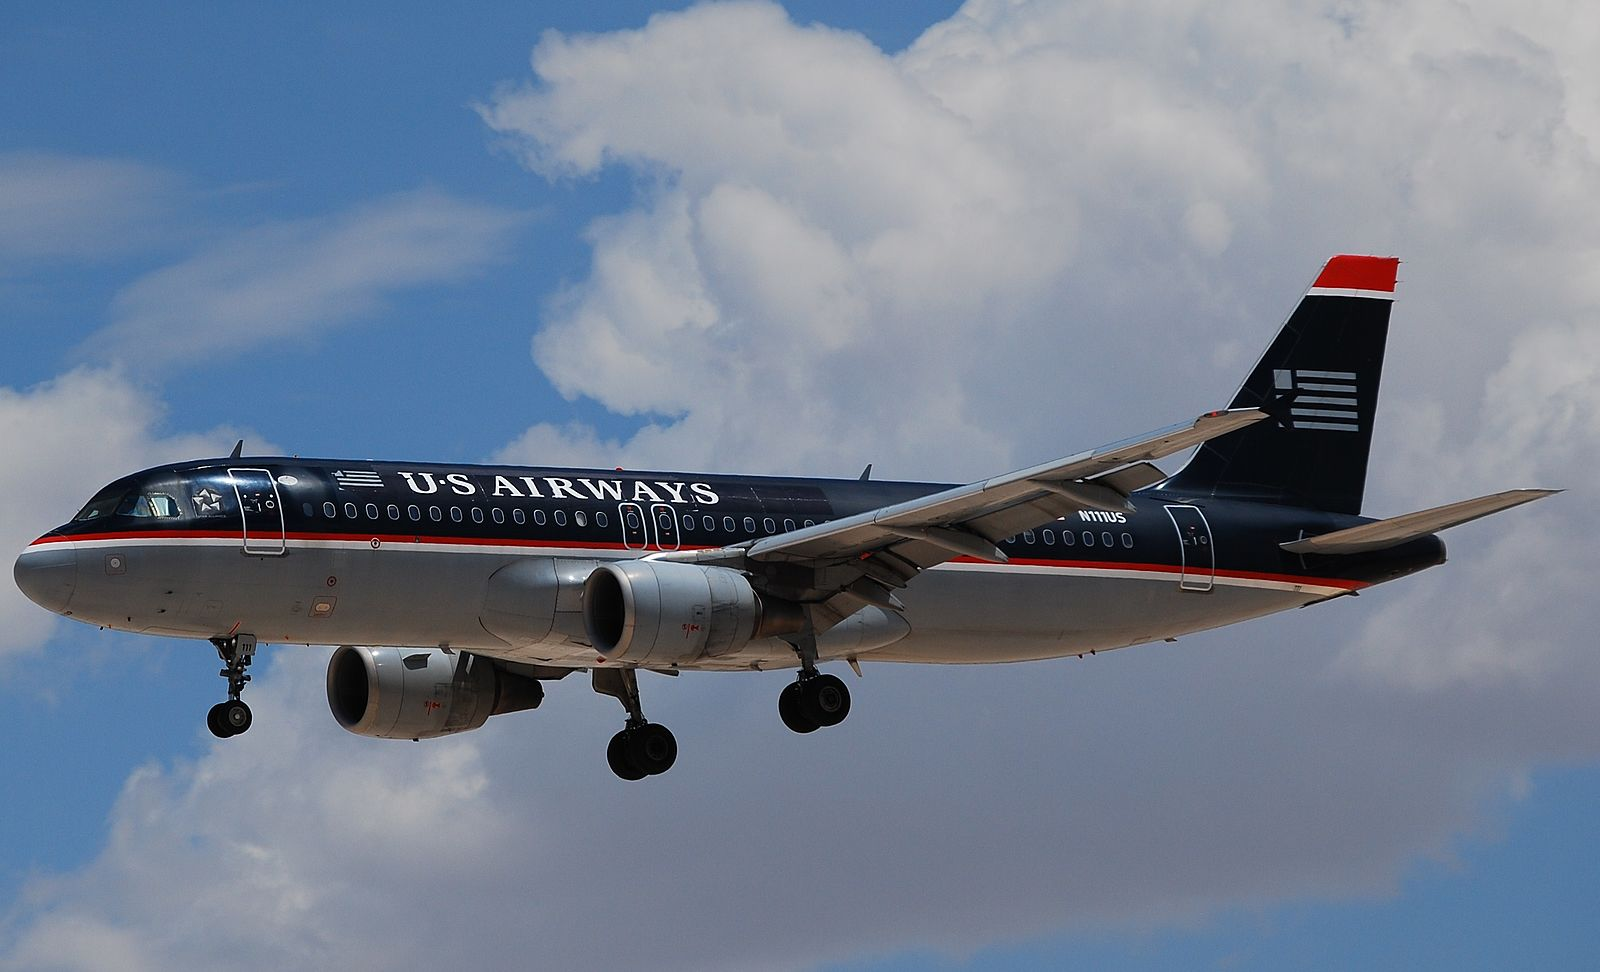 The blue/black US Airways livery (Photo provided by Eddie Maloney from North Las Vegas, USA (US AIRWAYS A320-214 N111US Uploaded by russavia) [CC BY-SA 2.0 (http://creativecommons.org/licenses/by-sa/2.0)], via Wikimedia Commons)